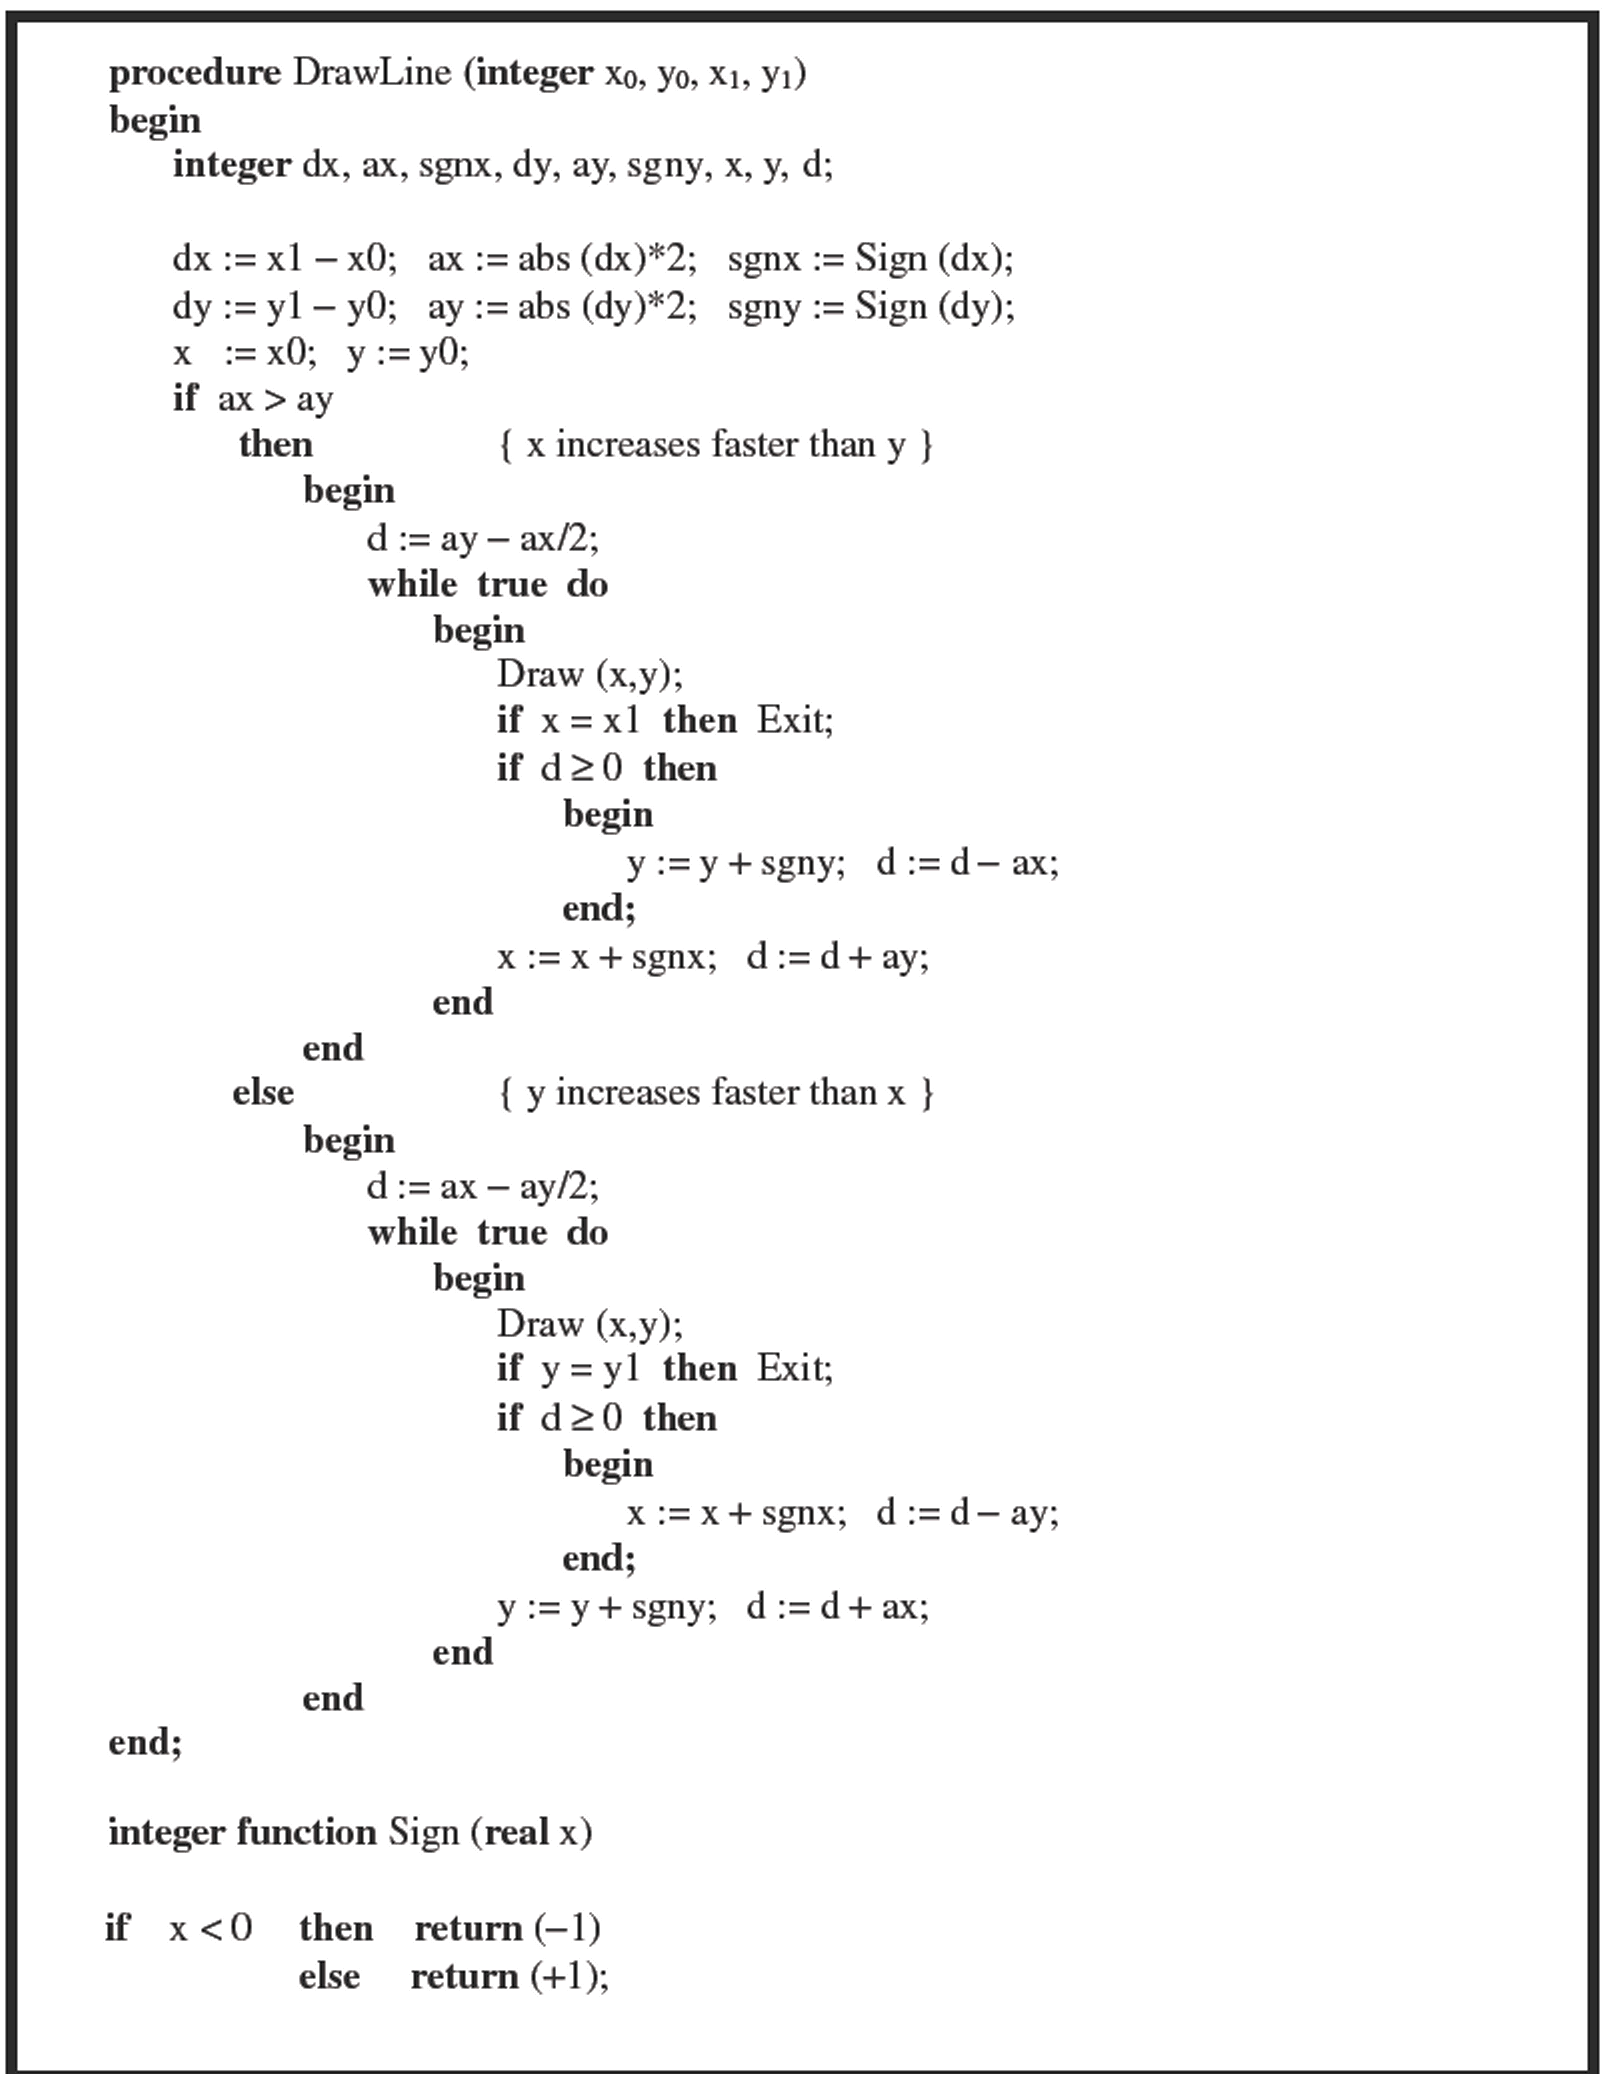 Bresenham Line Drawing Algorithm Questions : C program of dda line drawing algorithm juicegalatl over